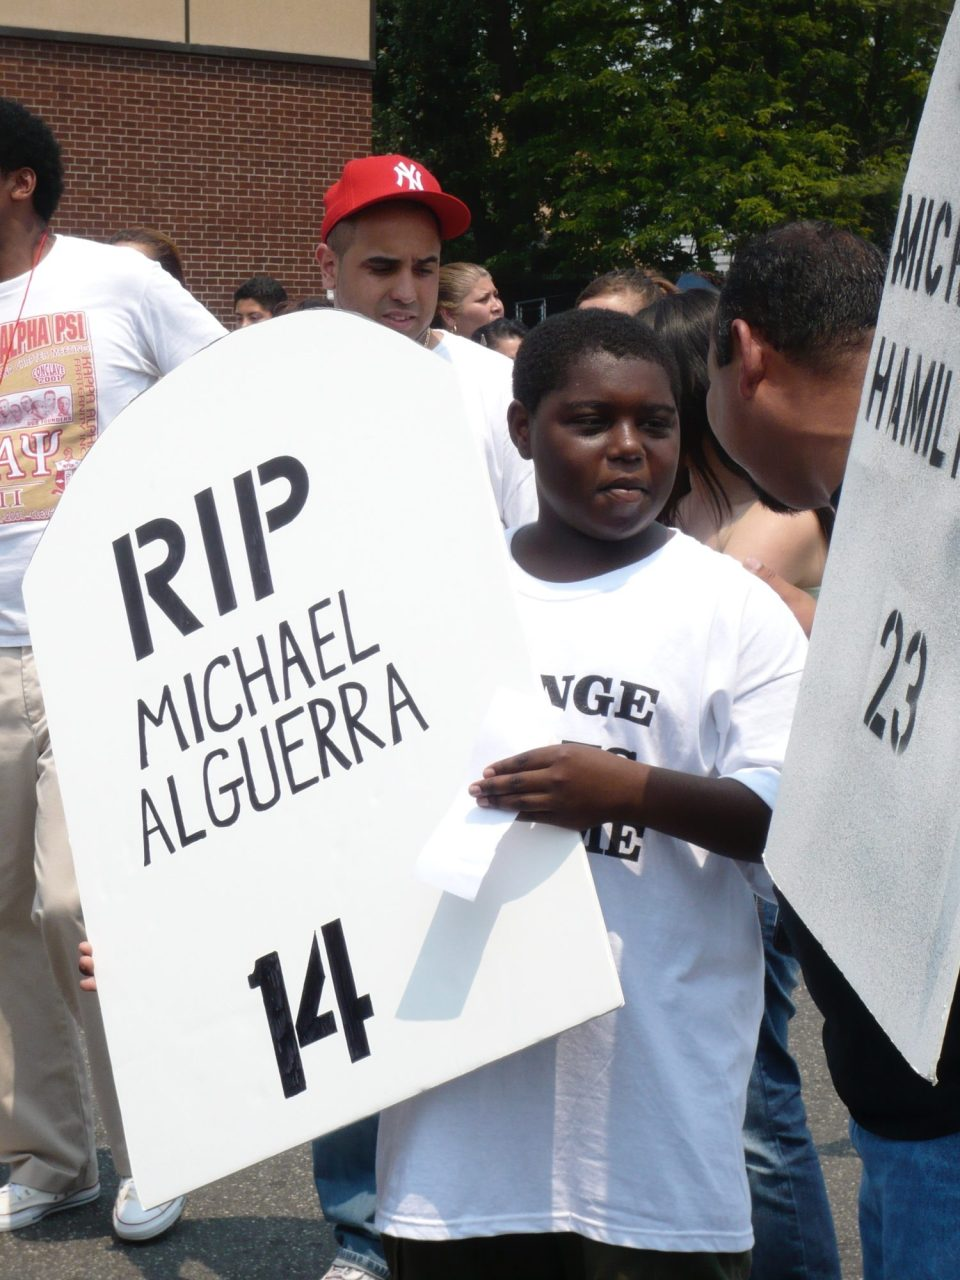 Young people protesting gang violence in Long Island after the death of a 15-year-old outside Hempstead High School.